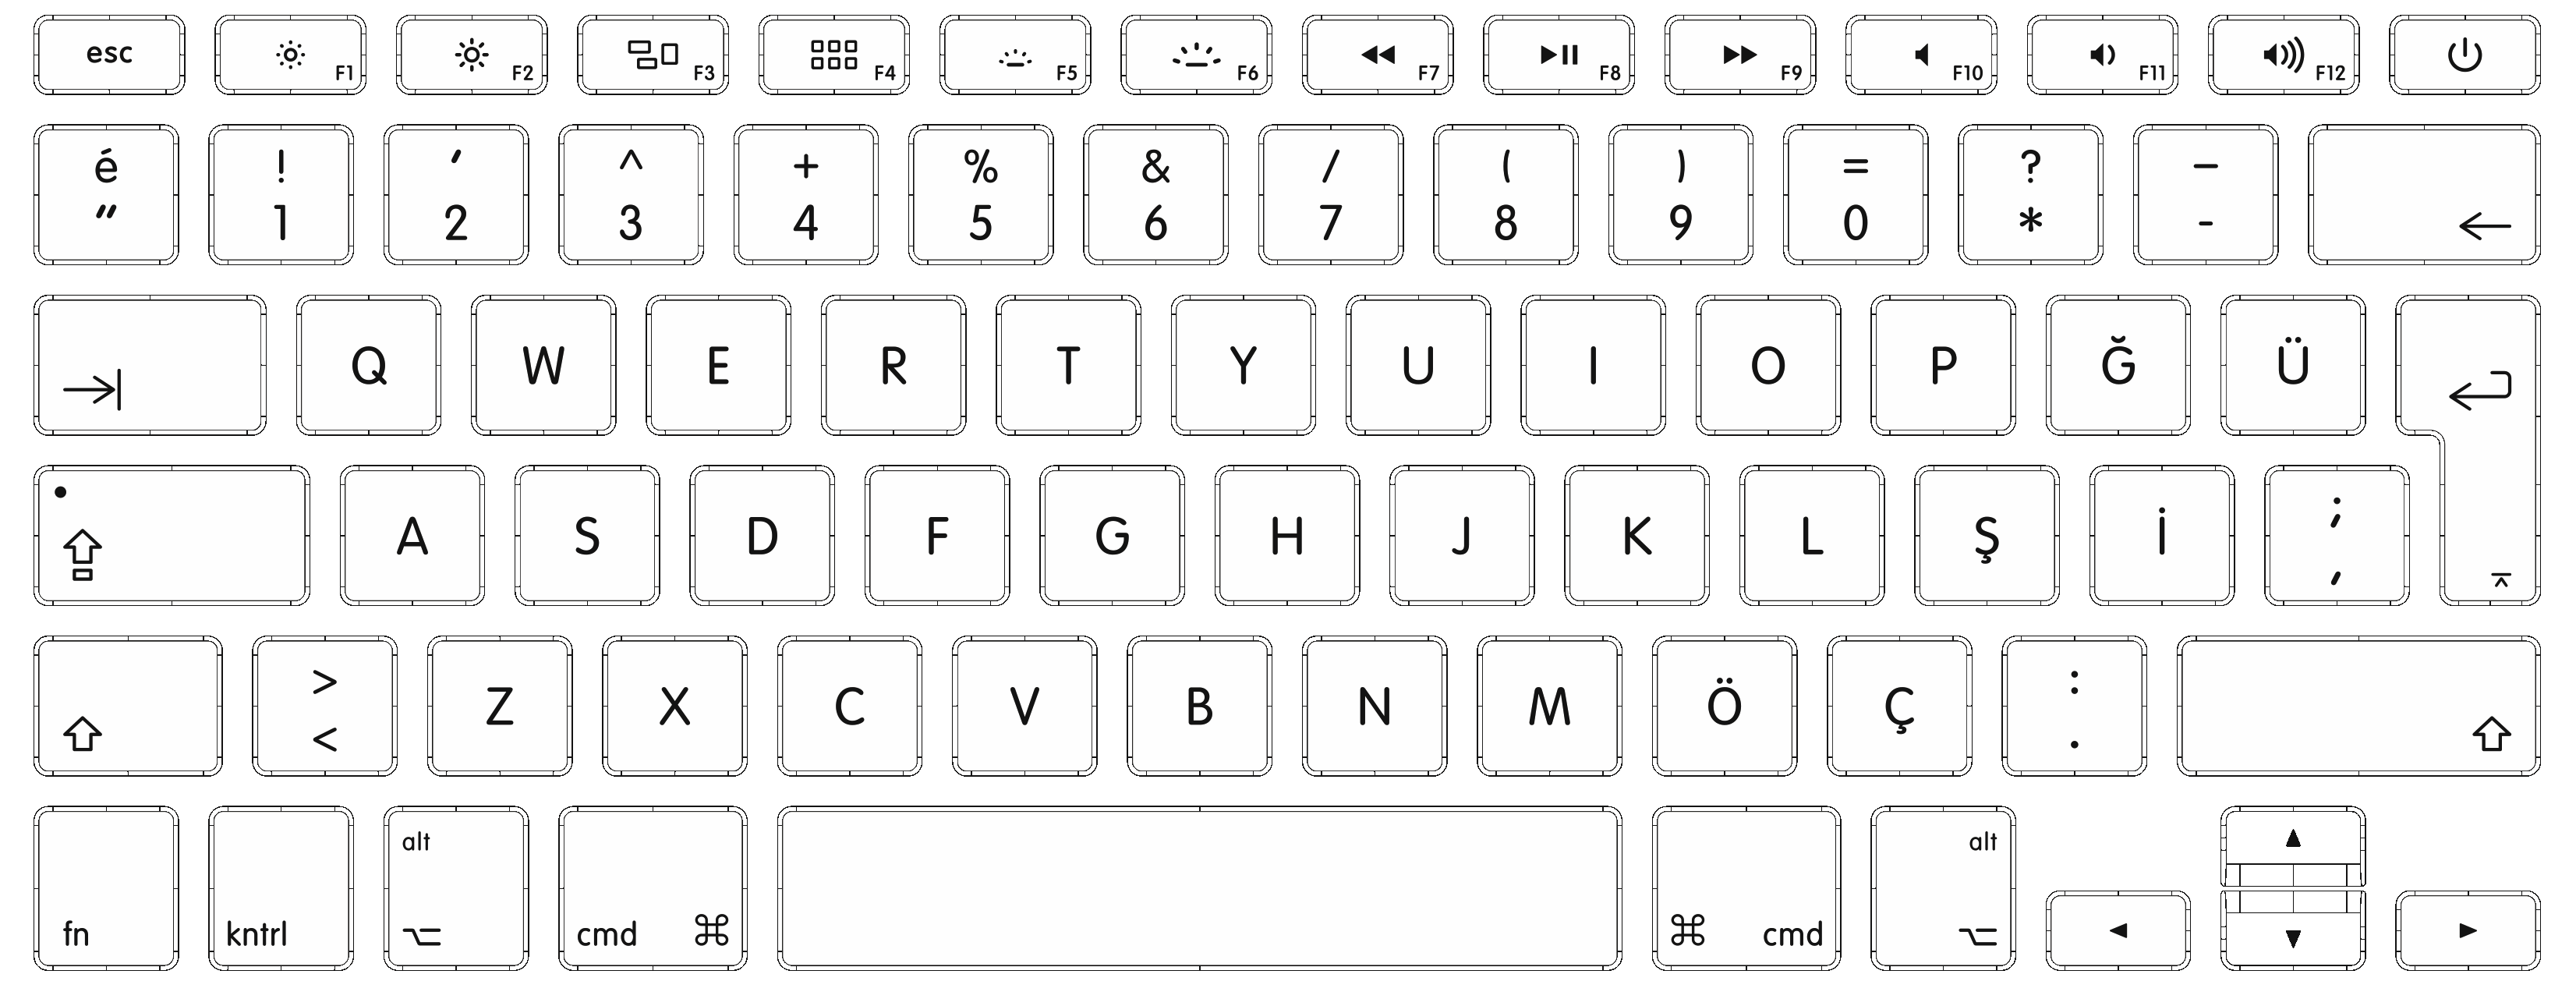 How To Identify Keyboard Localizations Apple Support - Us keyboard map